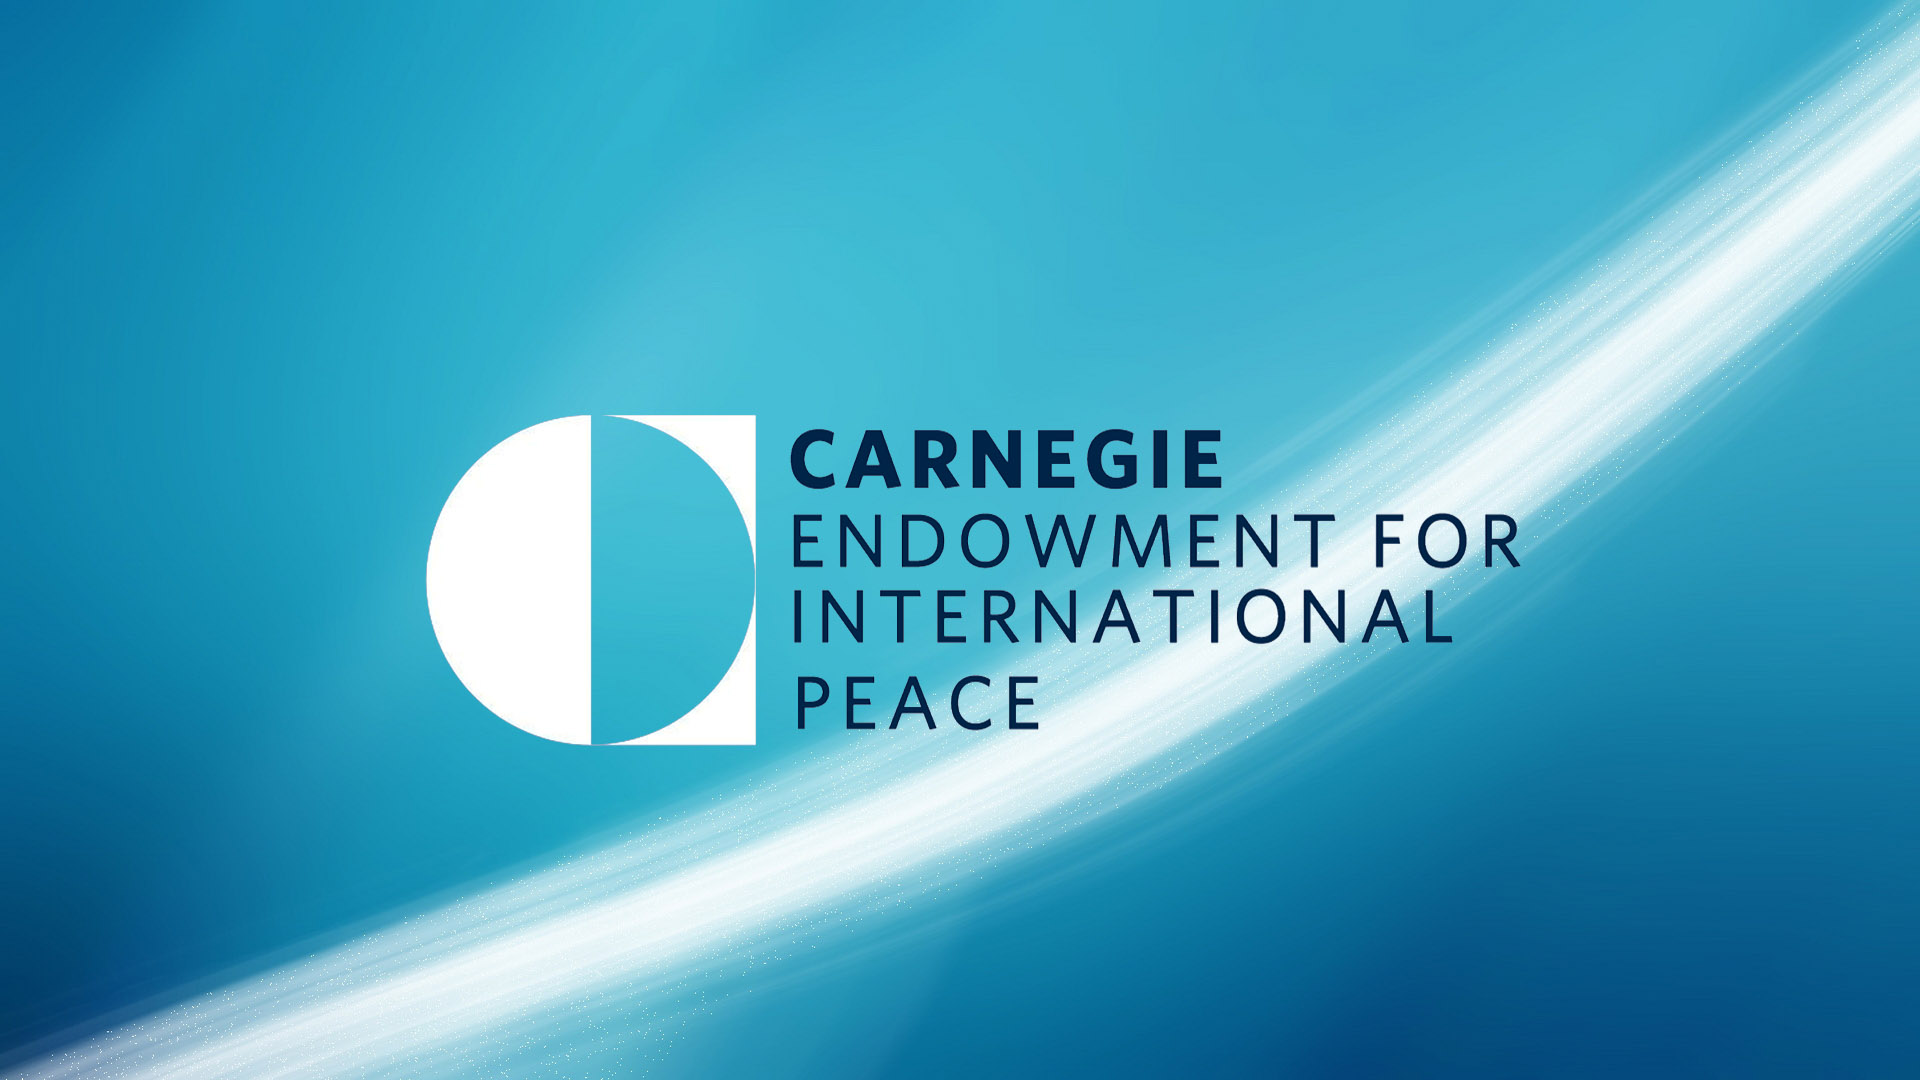 Carnegie Endowment for International Peace